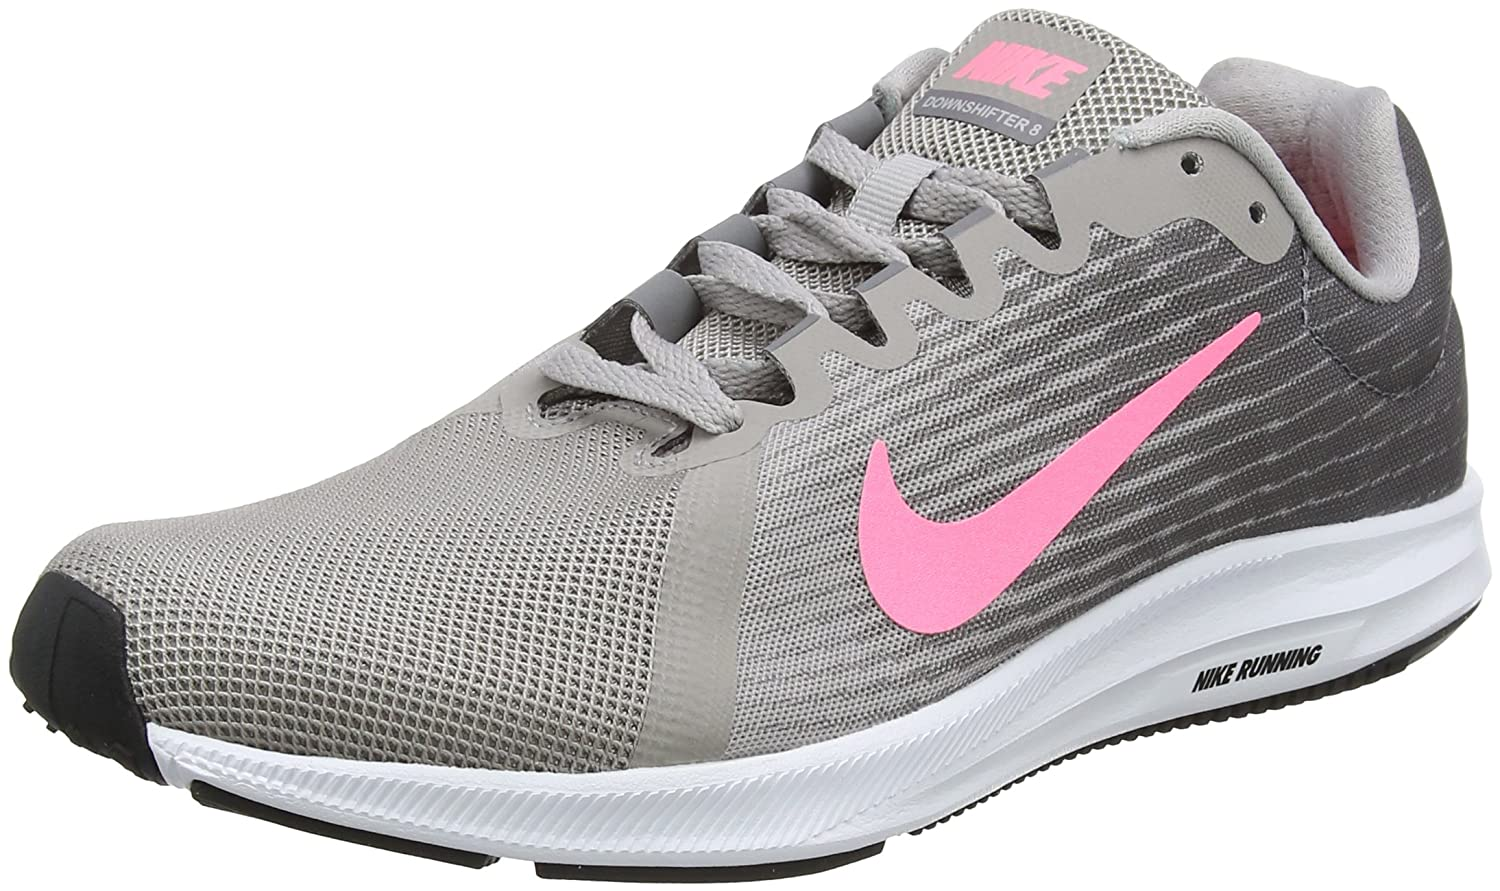 Nike Wmns Downshifter 8, Zapatillas de Running para Mujer 39 EU|Gris (Gunsmoke/Sunset Pulse-atmosphere Grey 004)